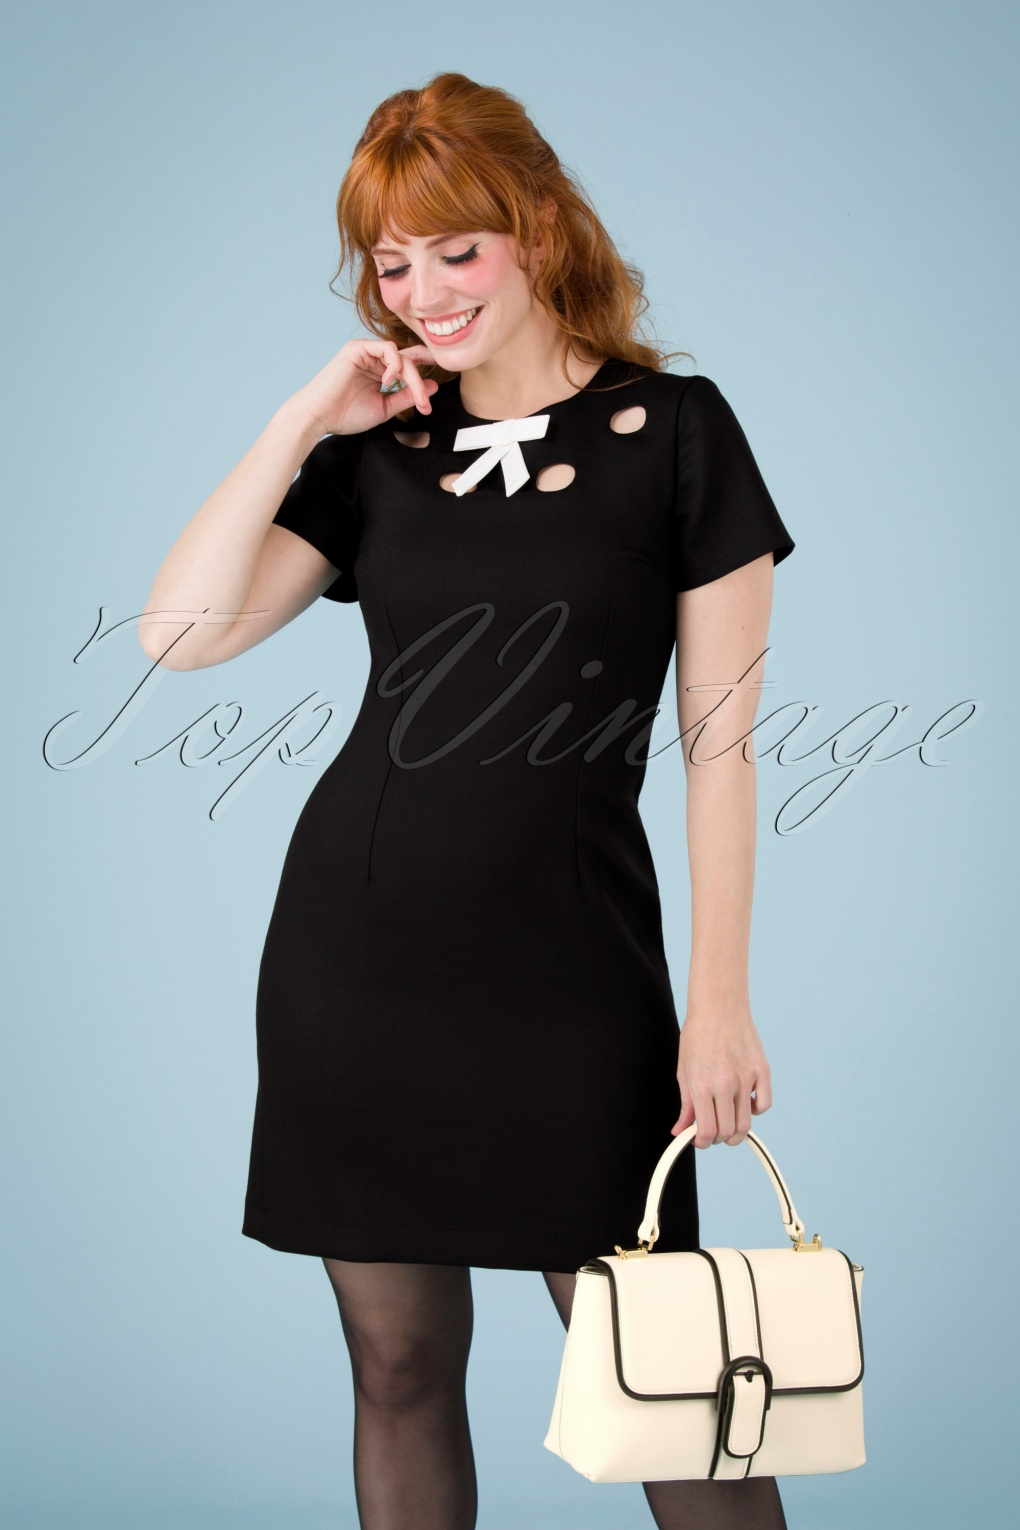 60s Dresses | 1960s Dresses Mod, Mini, Hippie 60s Cindy Cut Out Bow Dress in Black and Ivory £126.13 AT vintagedancer.com